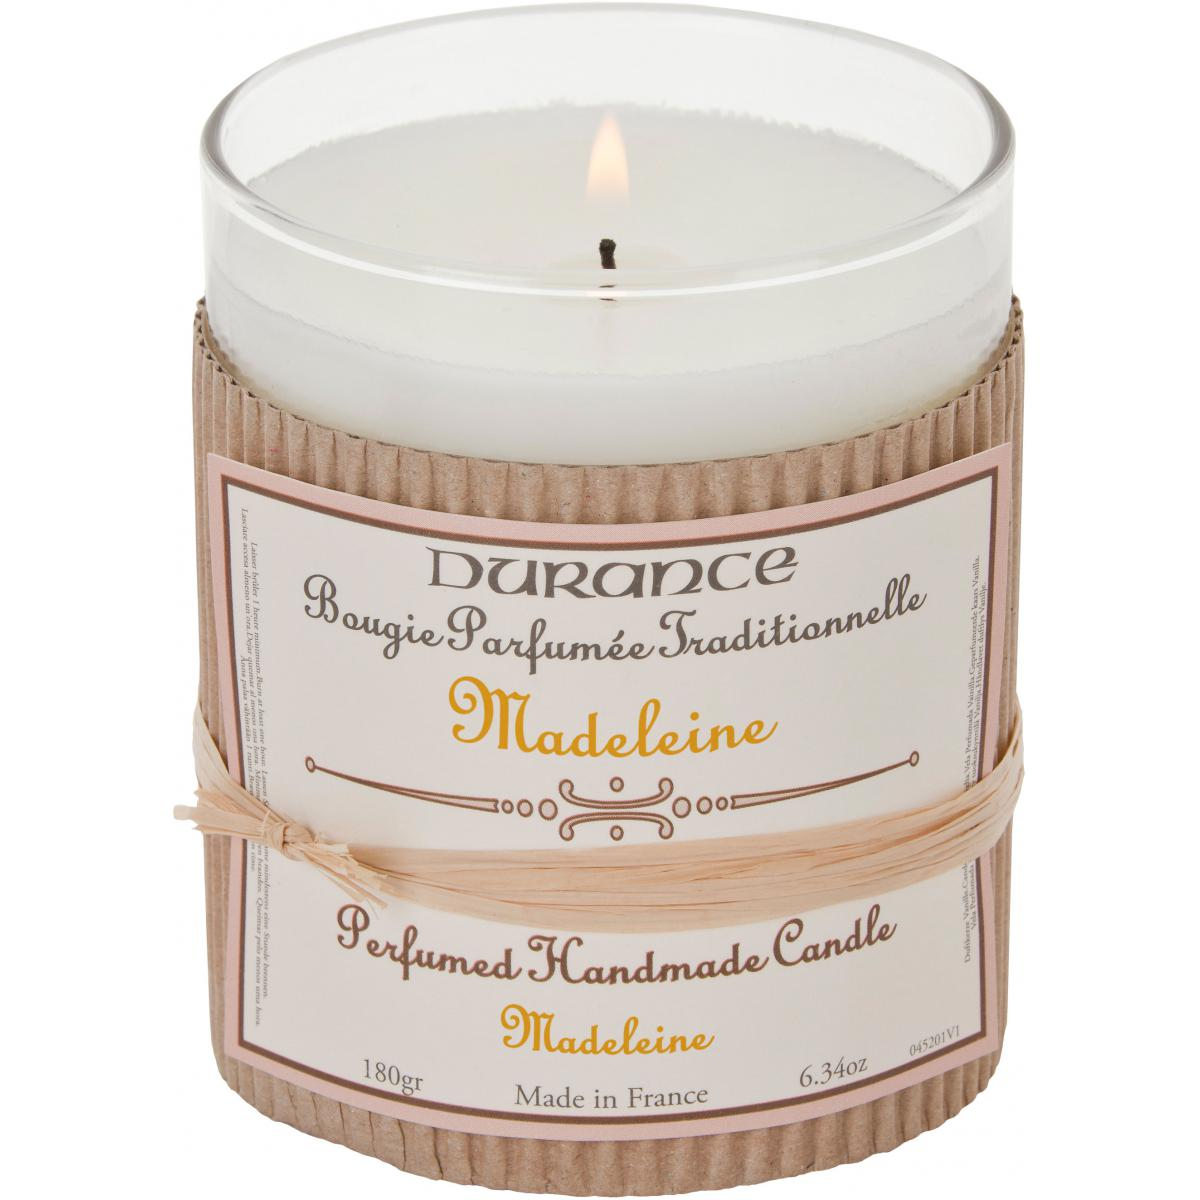 Bougie Parfumée Traditionnelle Madeleine Durance